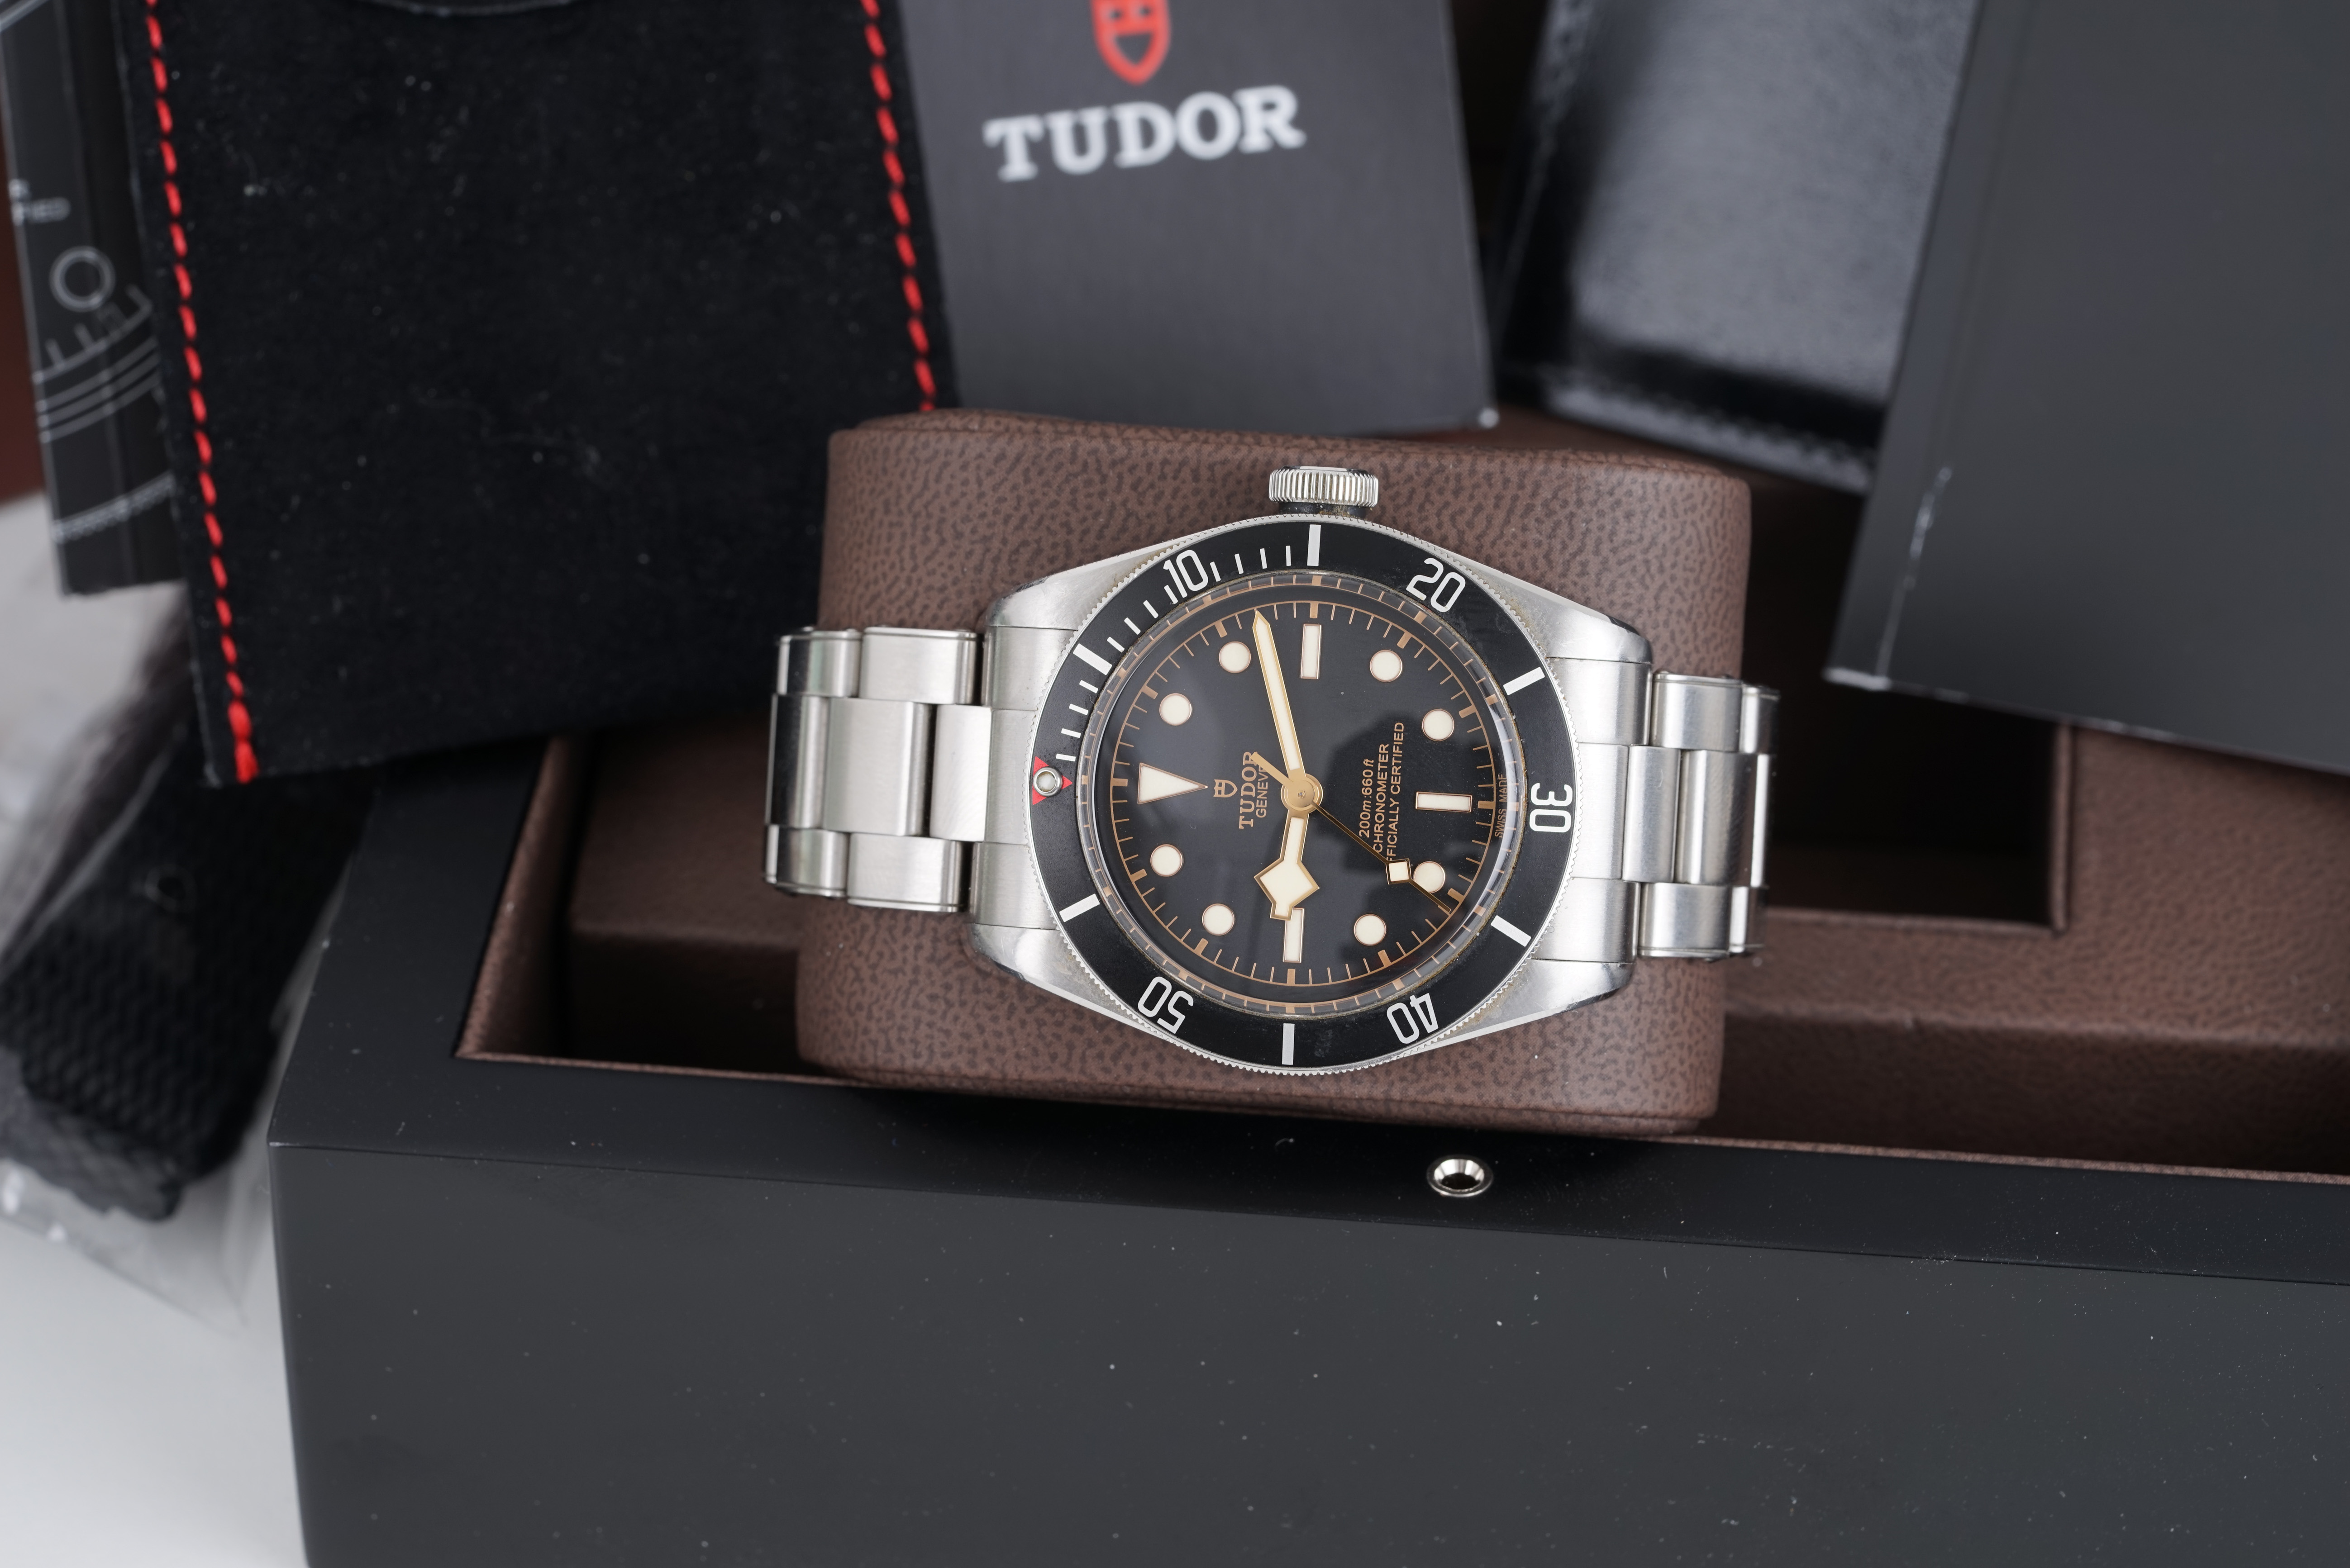 GENTLEMENS TUDOR HERITAGE BLACK BAY WRISTWATCH W/ BOX BOOKLETS & PARTS, circular black dial with dot - Image 3 of 4